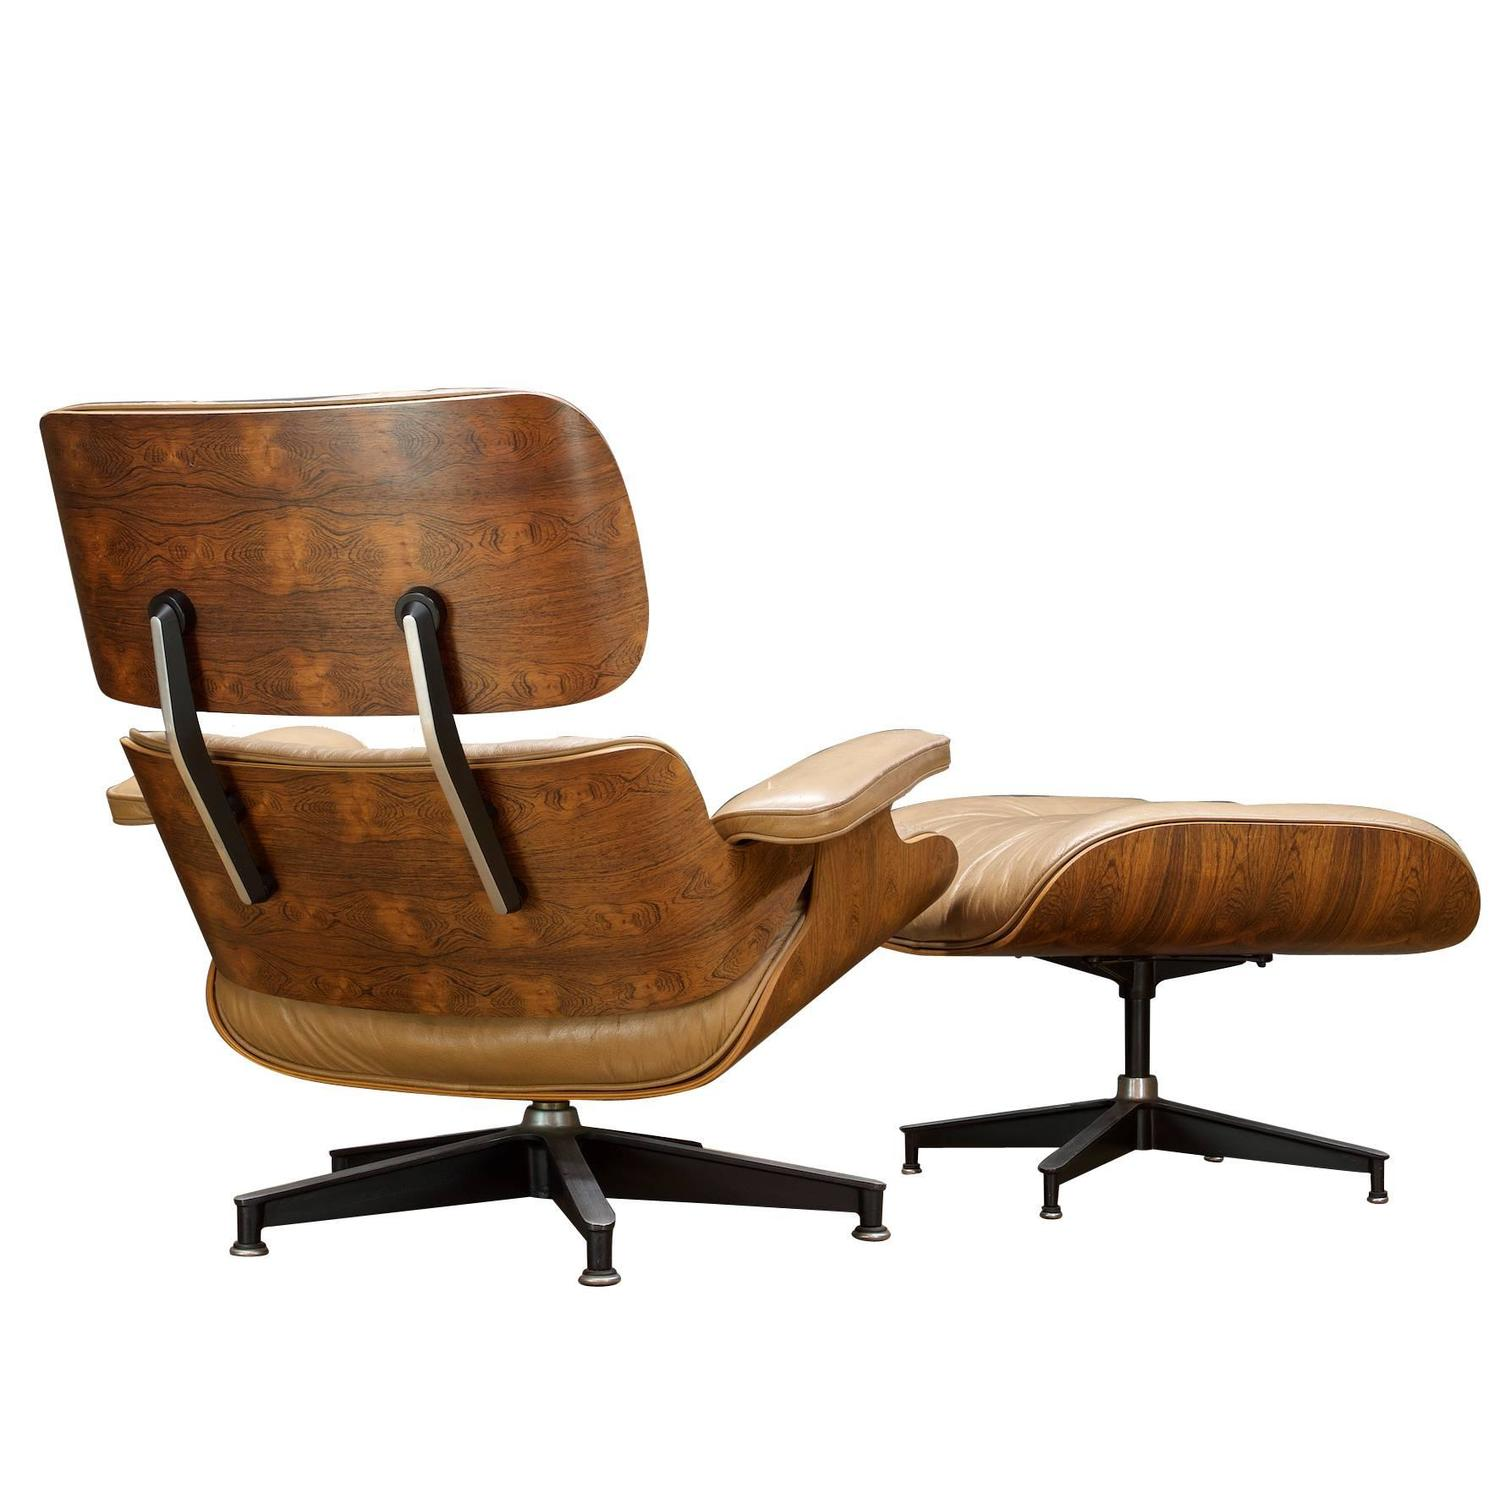 eames lounge chair for sale ergonomic under 300 670 671 brazilian rosewood and ottoman